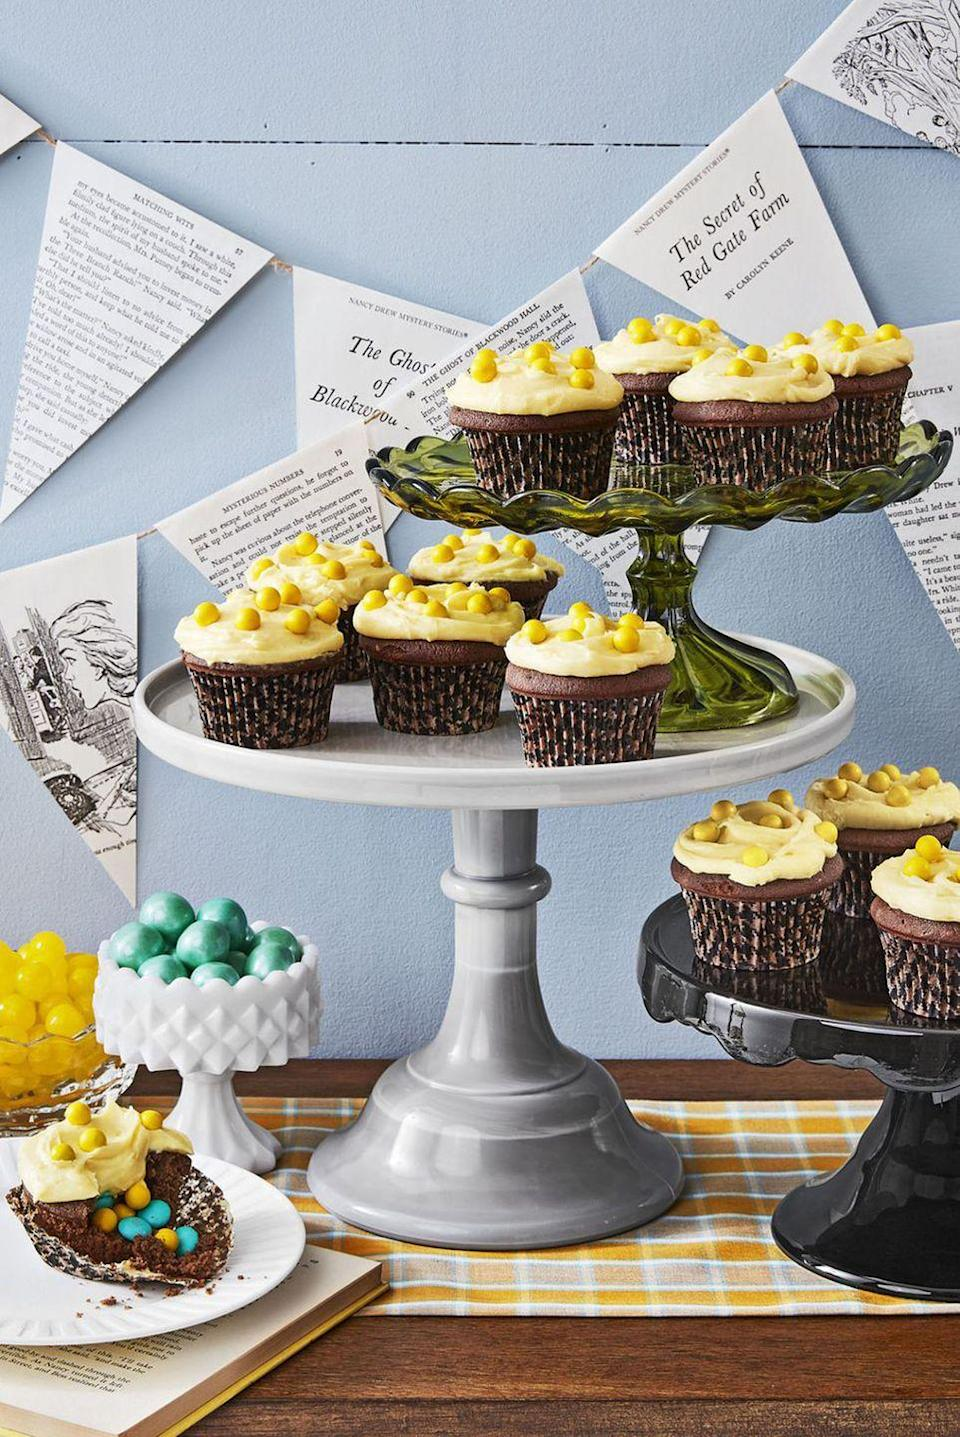 """<p>Hidden candies inside these chocolatey cupcakes make for a deliciously sweet surprise. </p><p><strong><a href=""""https://www.countryliving.com/food-drinks/recipes/a44615/devils-food-cupcakes-recipe/"""" rel=""""nofollow noopener"""" target=""""_blank"""" data-ylk=""""slk:Get the recipe"""" class=""""link rapid-noclick-resp"""">Get the recipe</a>.</strong></p><p><a class=""""link rapid-noclick-resp"""" href=""""https://www.amazon.com/YestBuy-Maypole-Wedding-Acrylic-Cupcake/dp/B011ARKU3S?tag=syn-yahoo-20&ascsubtag=%5Bartid%7C10050.g.1366%5Bsrc%7Cyahoo-us"""" rel=""""nofollow noopener"""" target=""""_blank"""" data-ylk=""""slk:SHOP CUPCAKE STANDS"""">SHOP CUPCAKE STANDS</a><br></p>"""